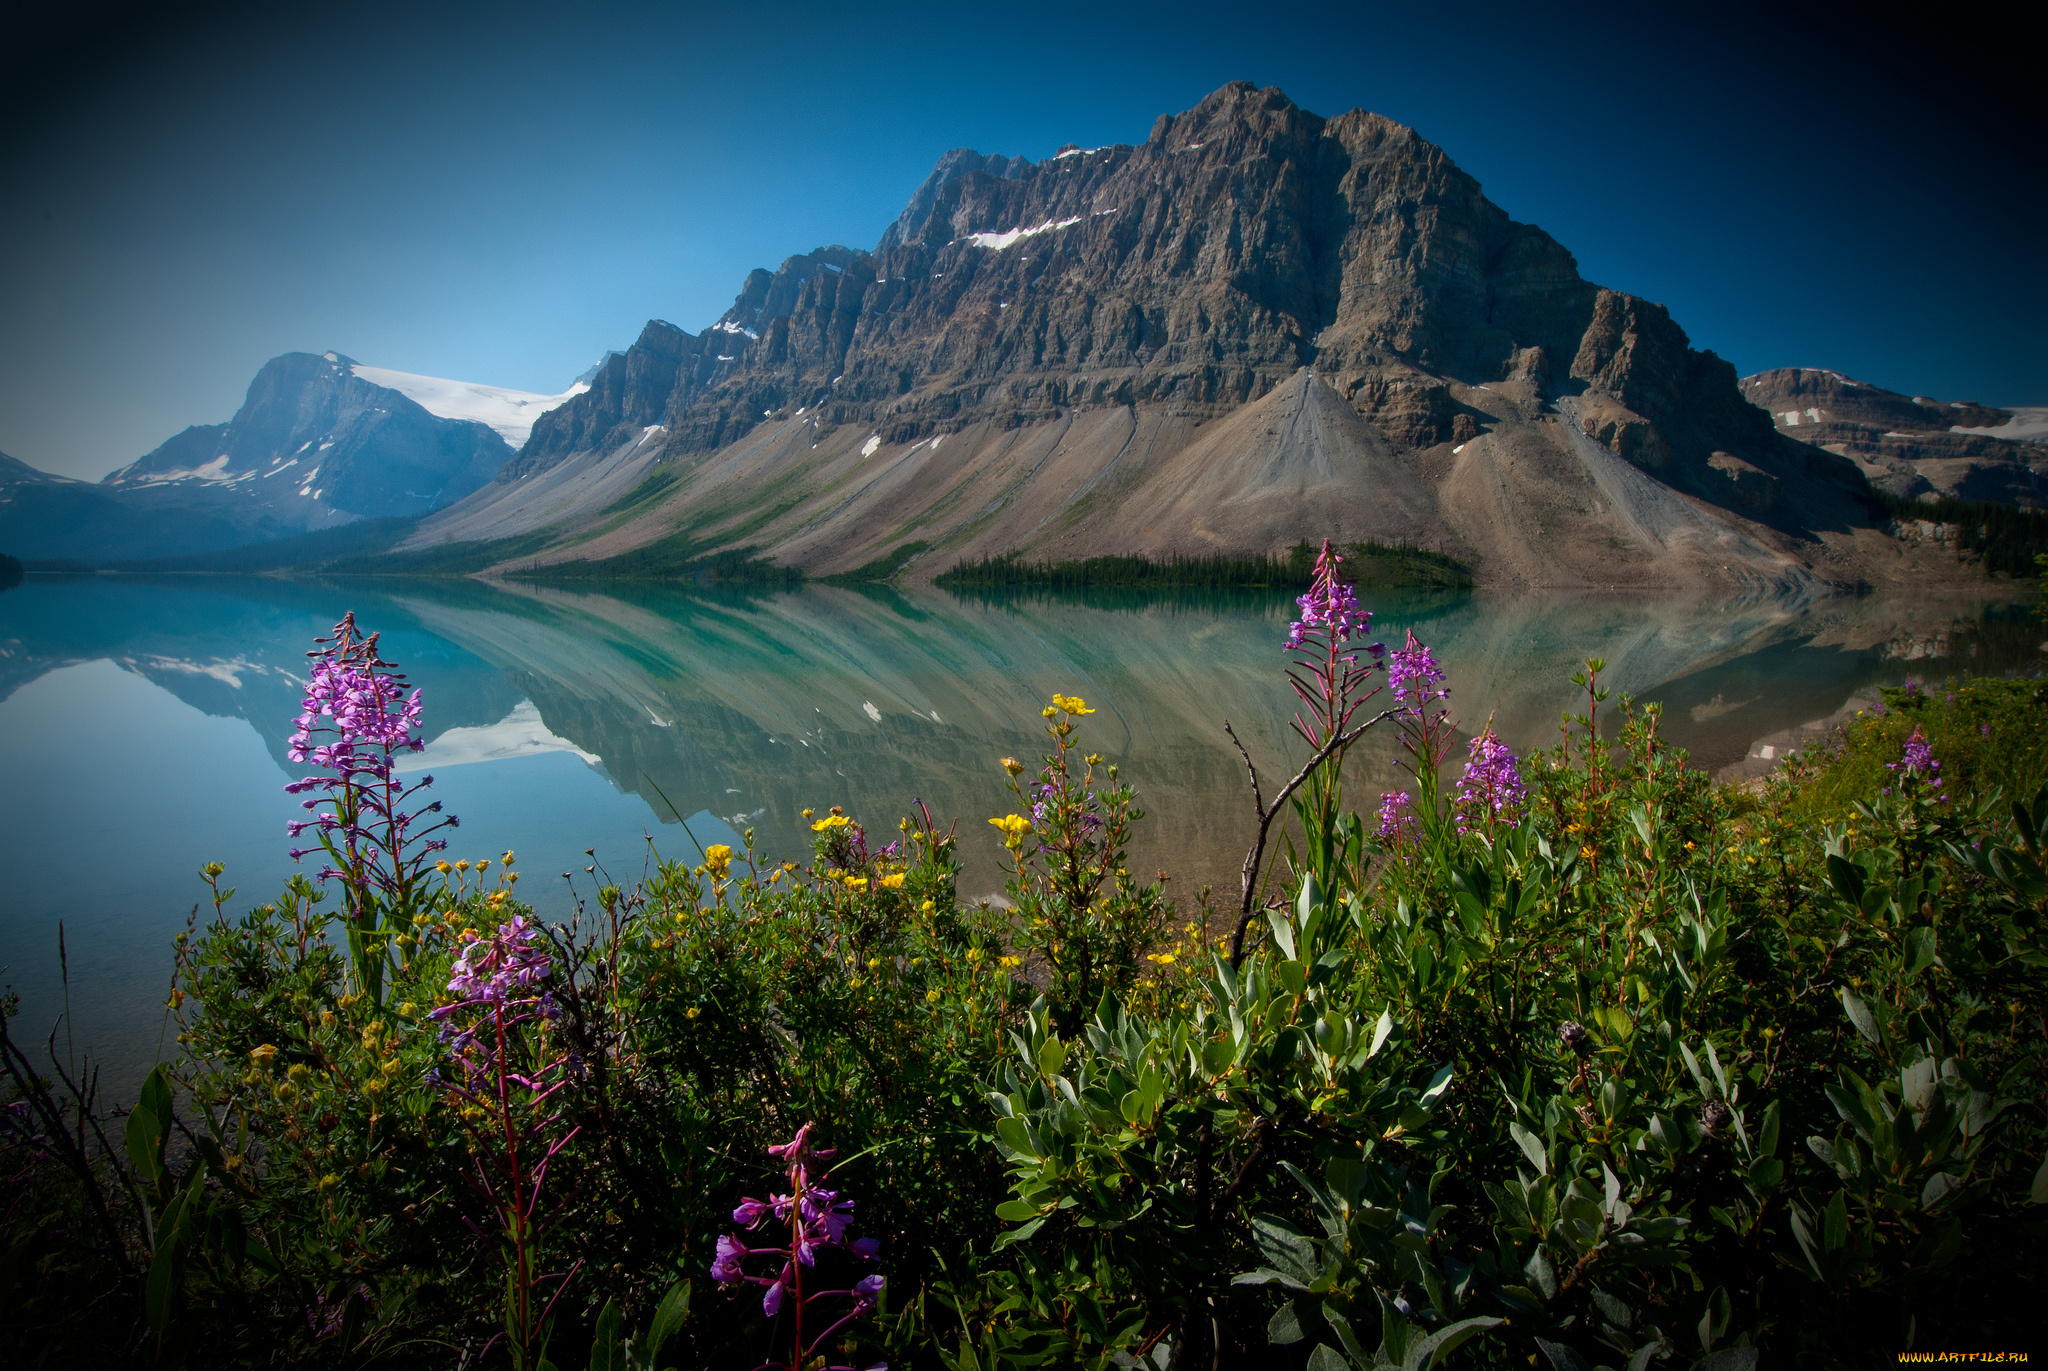 Bow Lake and Flowers, Banff National Park, Alberta, Canada  № 230862 бесплатно